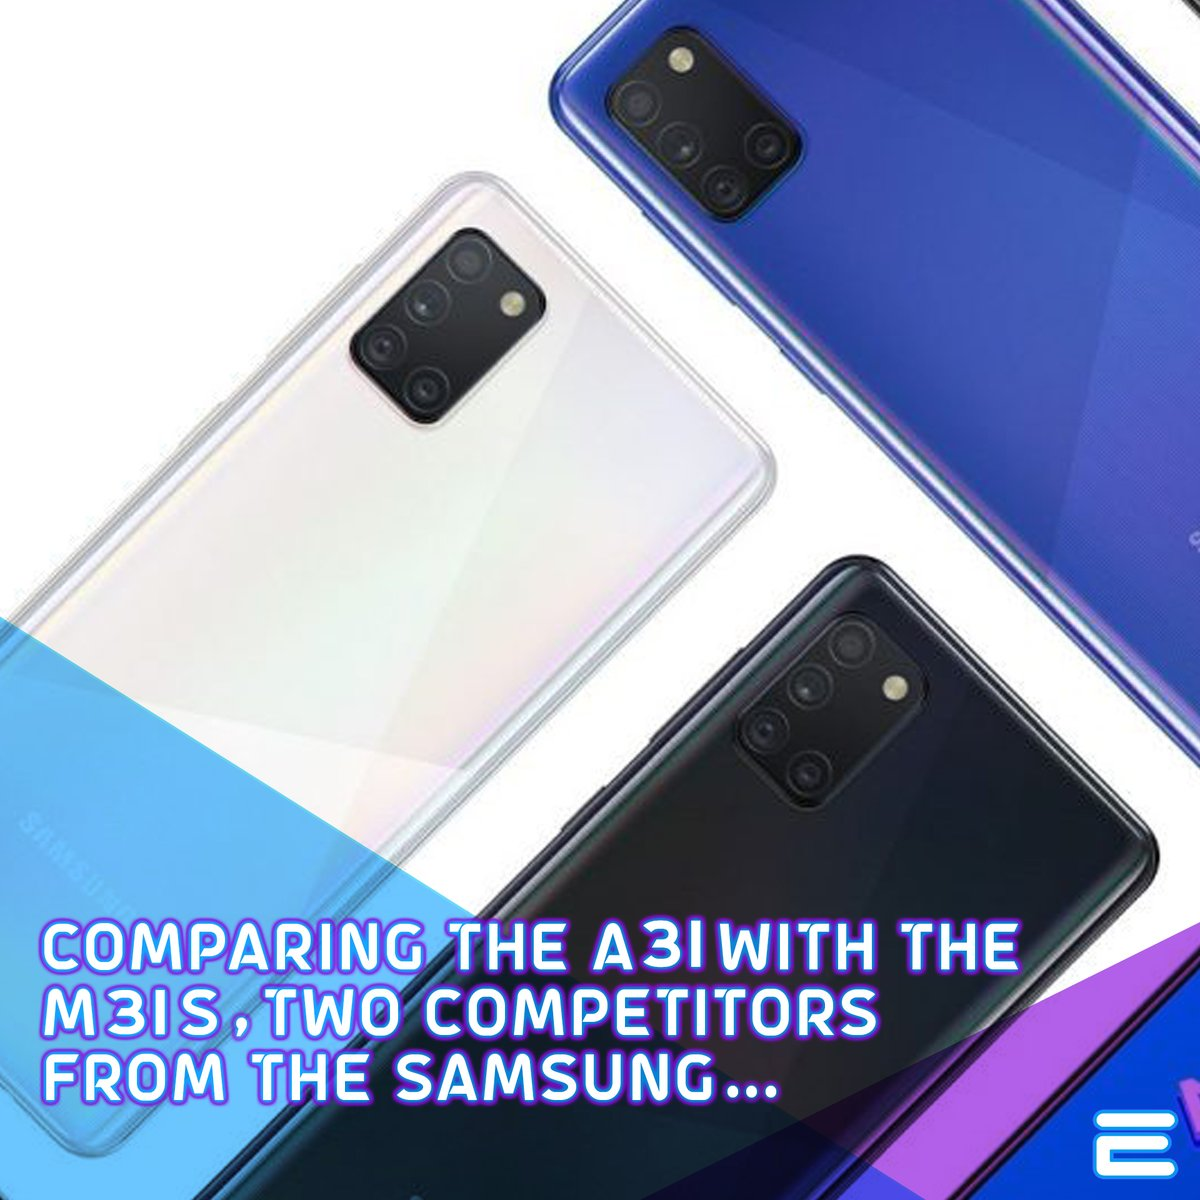 Comparing the A31 with the M31S, two competitors from the Samsung... check the link below for more information.  #euvotx #tech #Samsung #a31 #M31s